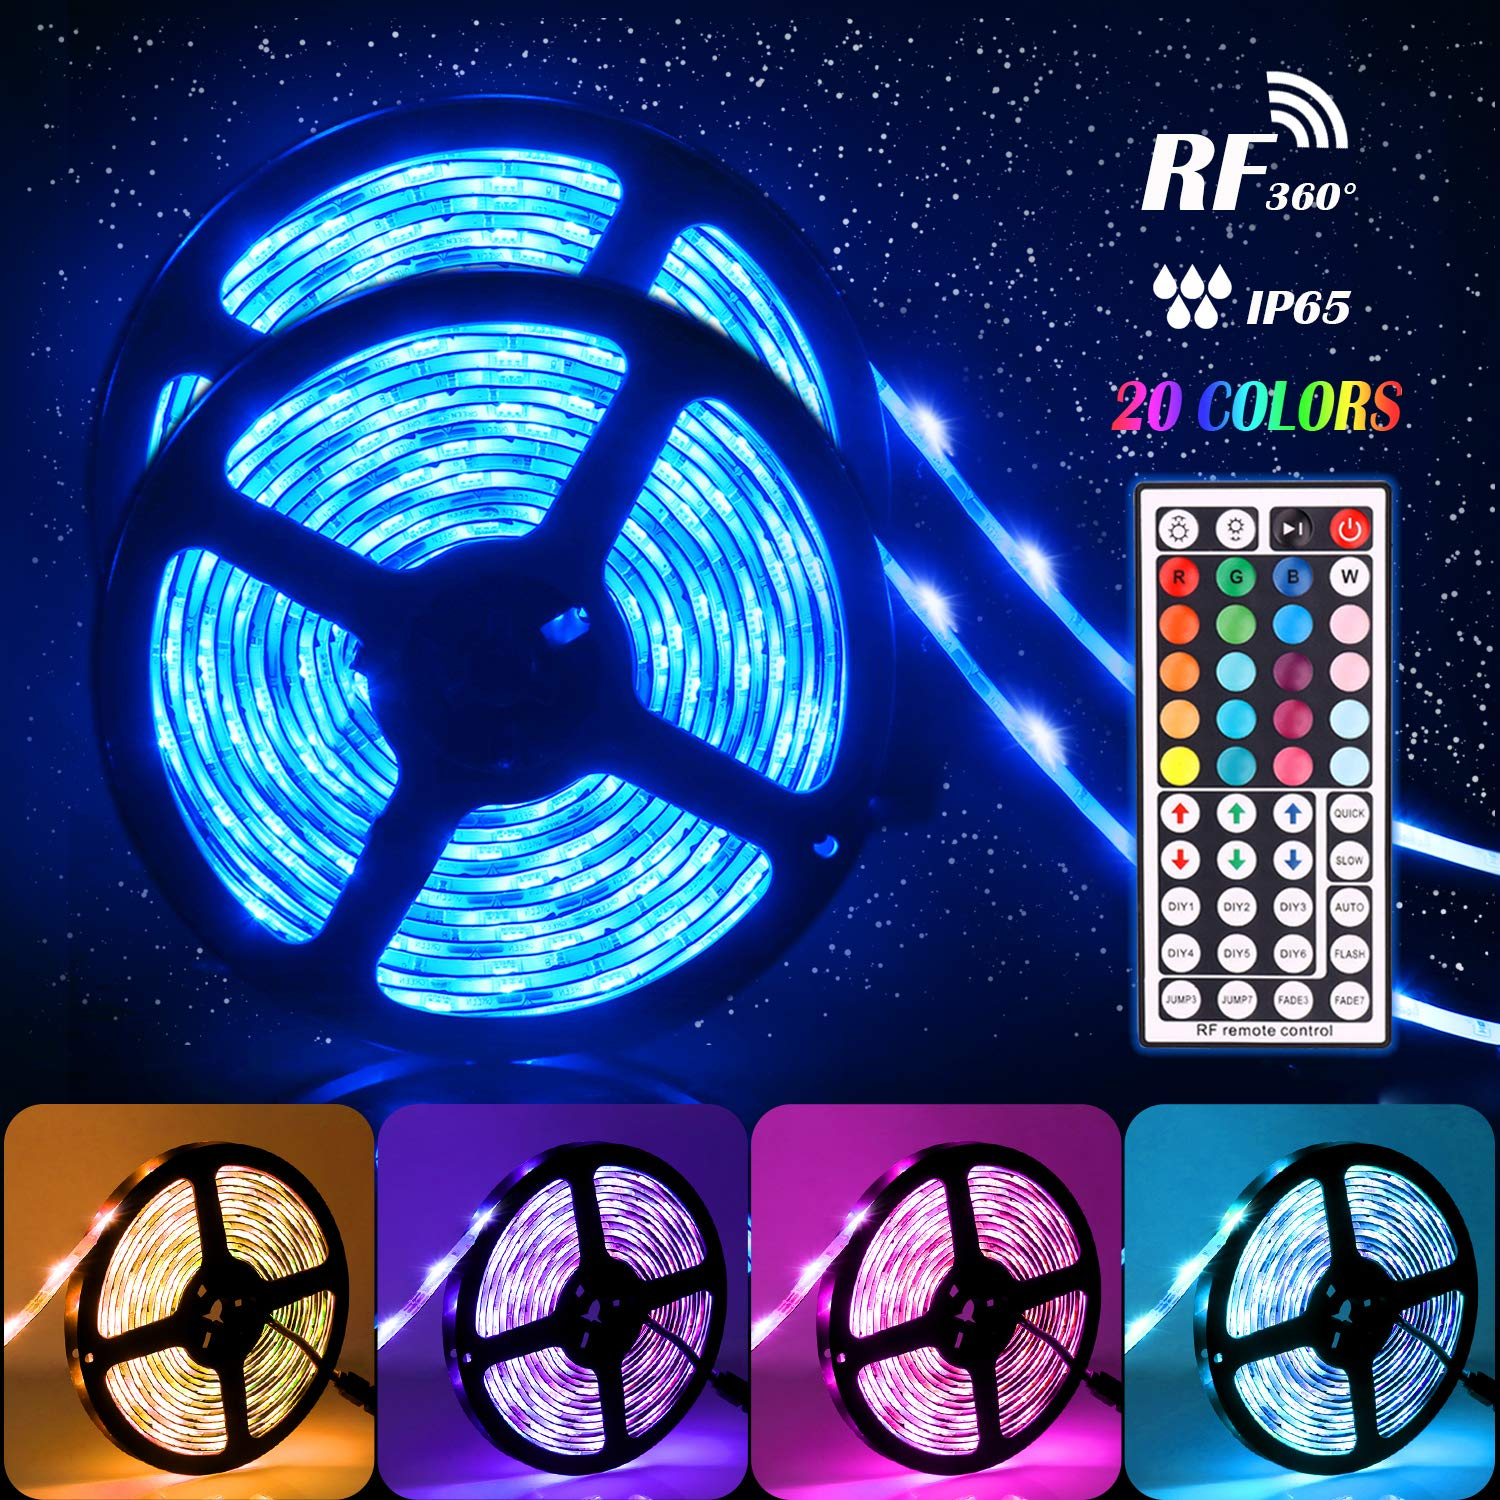 Led Light Strips,Tenmiro 32.8ft Led Strip Lights With 44key RF Remote Controller,Waterproof Color Changing RGB SMD 5050 300 LEDs Rope Lights, DC 12V5A Power Safety Decoration For Home Outdoor Lighting